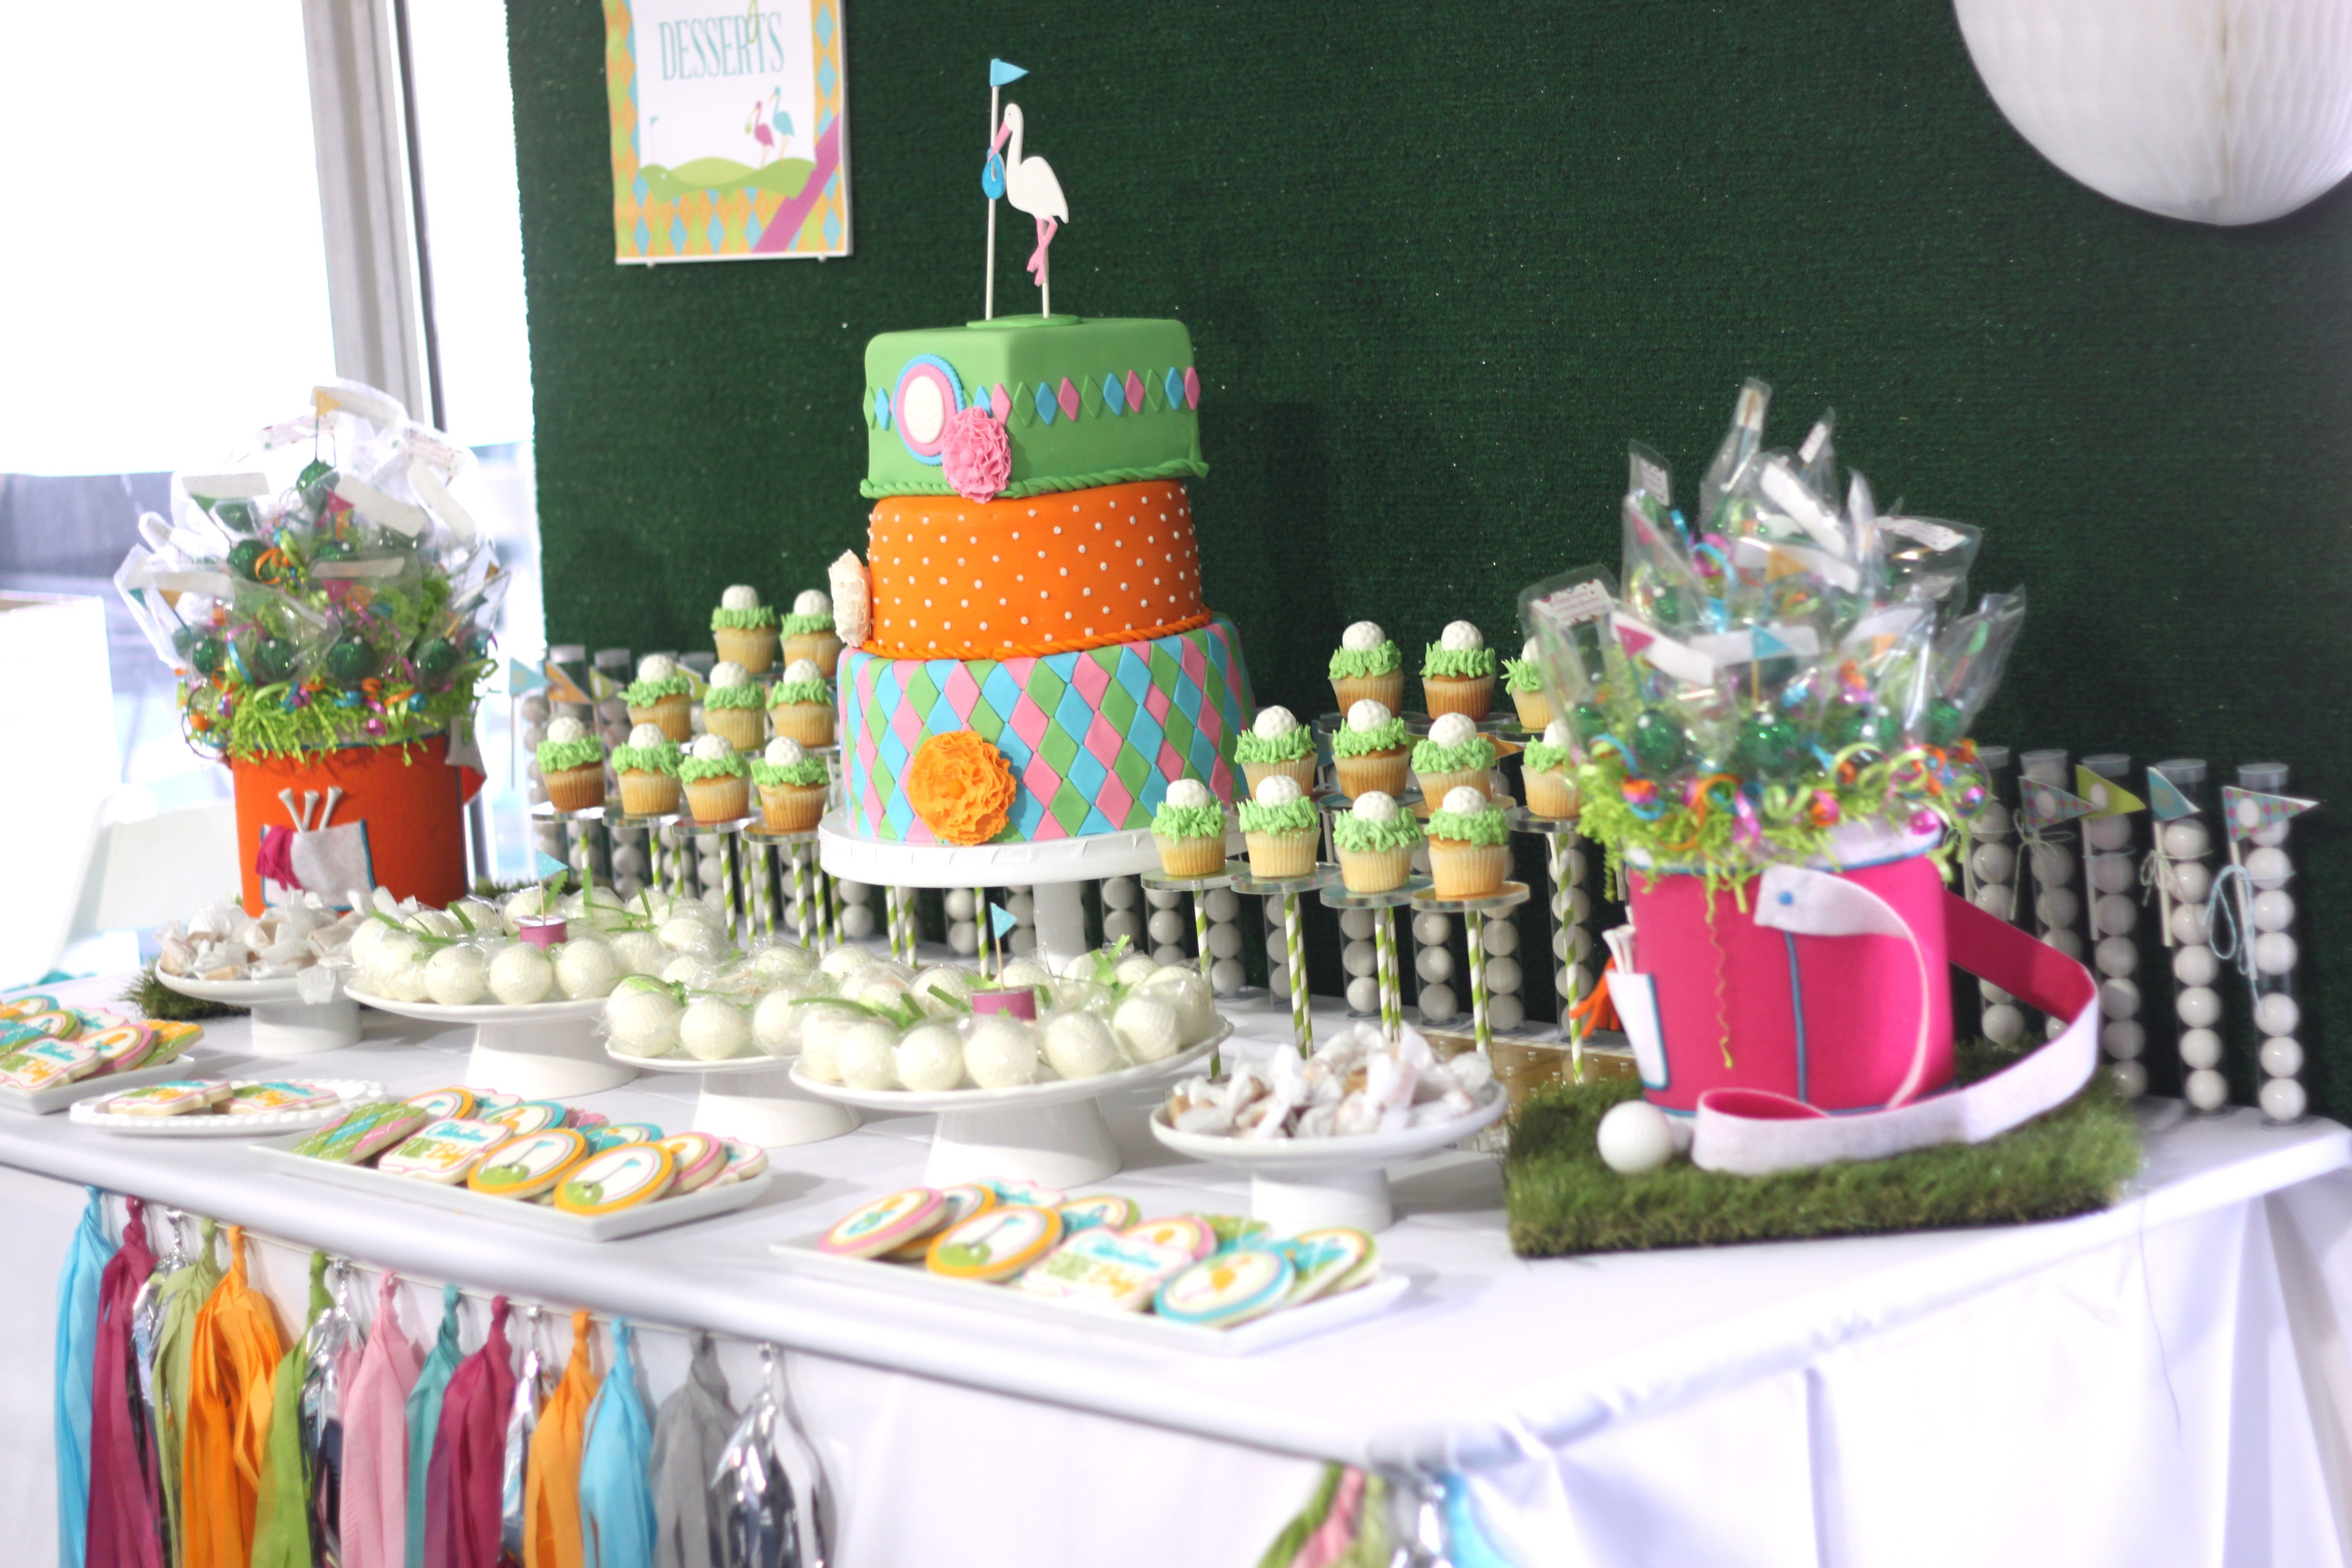 Pleasant Nursery Rhyme Baby Shower Theme Golf Themed Baby Shower Home Interior And Landscaping Pimpapssignezvosmurscom